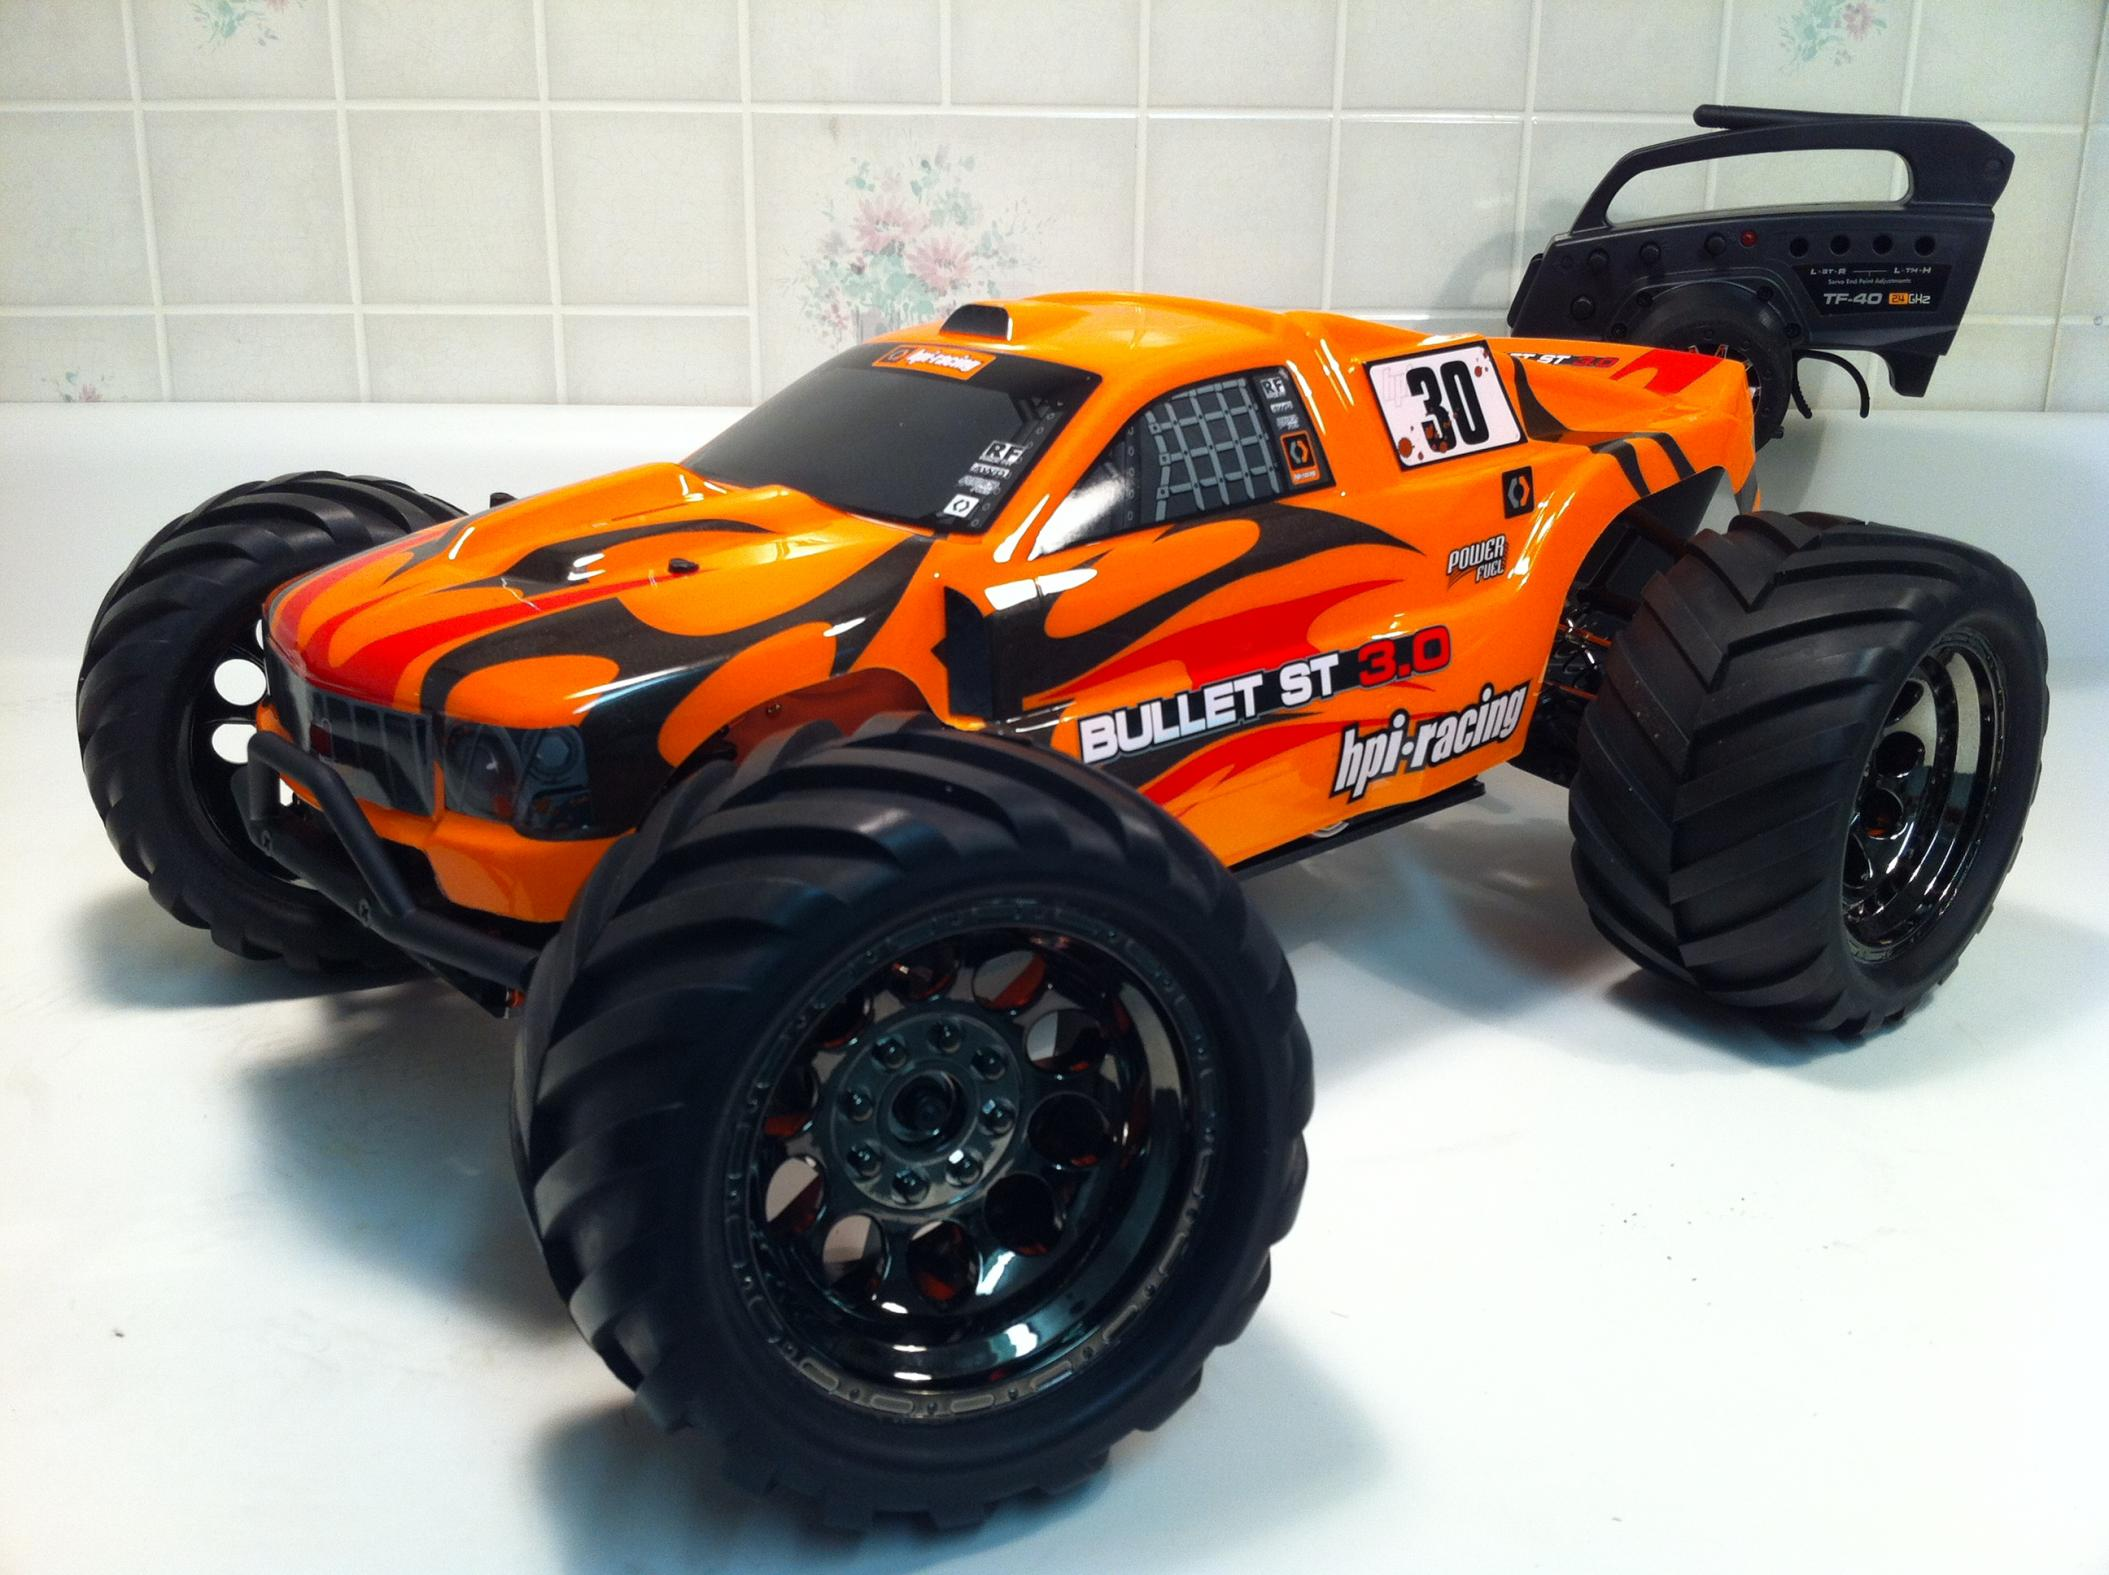 HPI Savage XS or Bullet ST MT img 1016